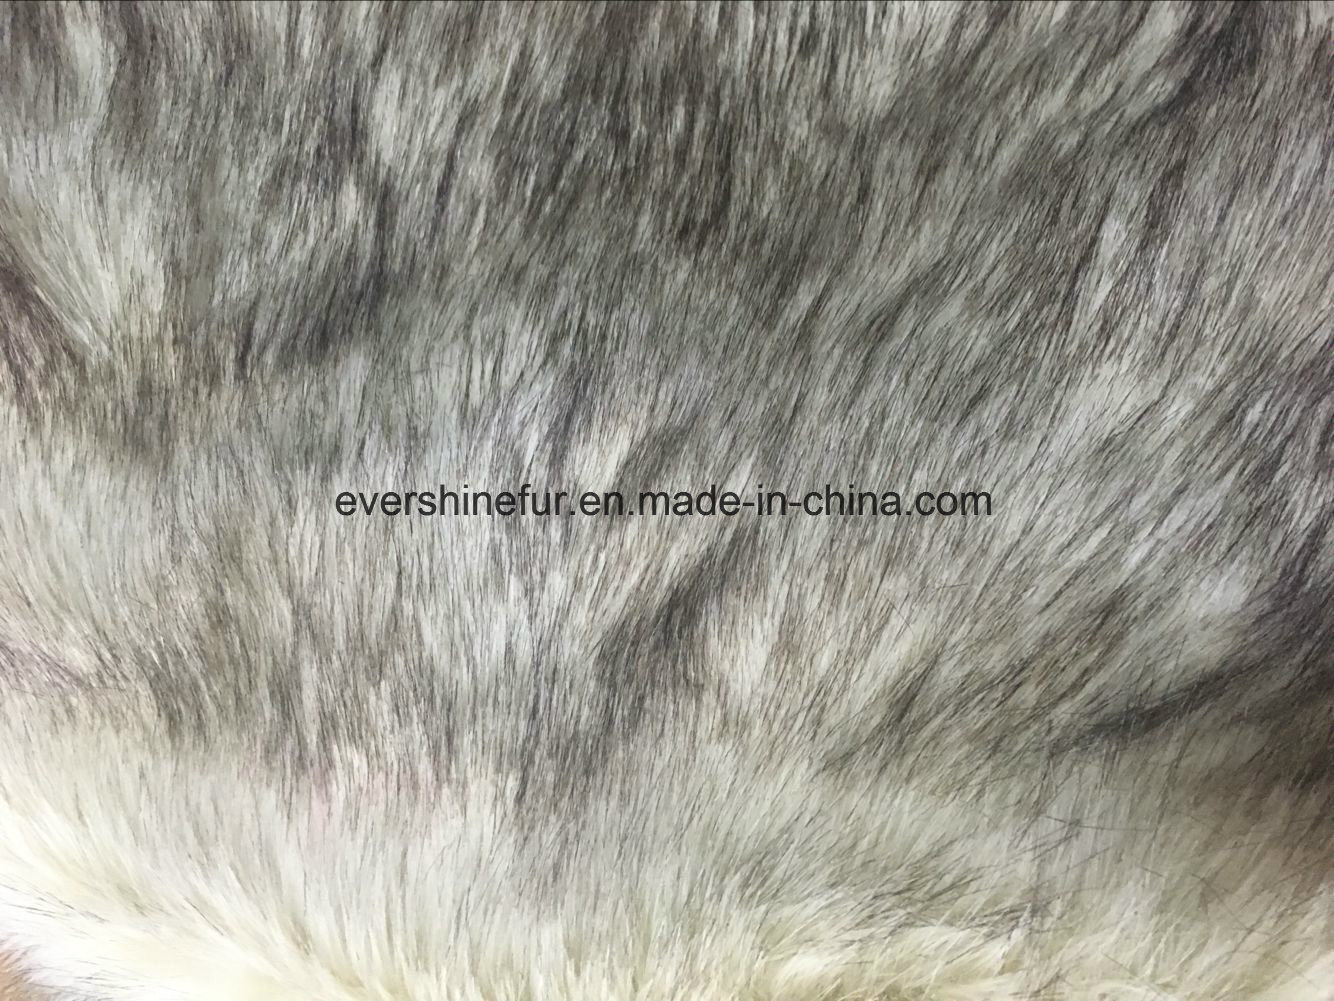 Mac Fur Hot High Pile Artificial Fur Faux Fur Long Pile Fur Fabric for Garment/Toy